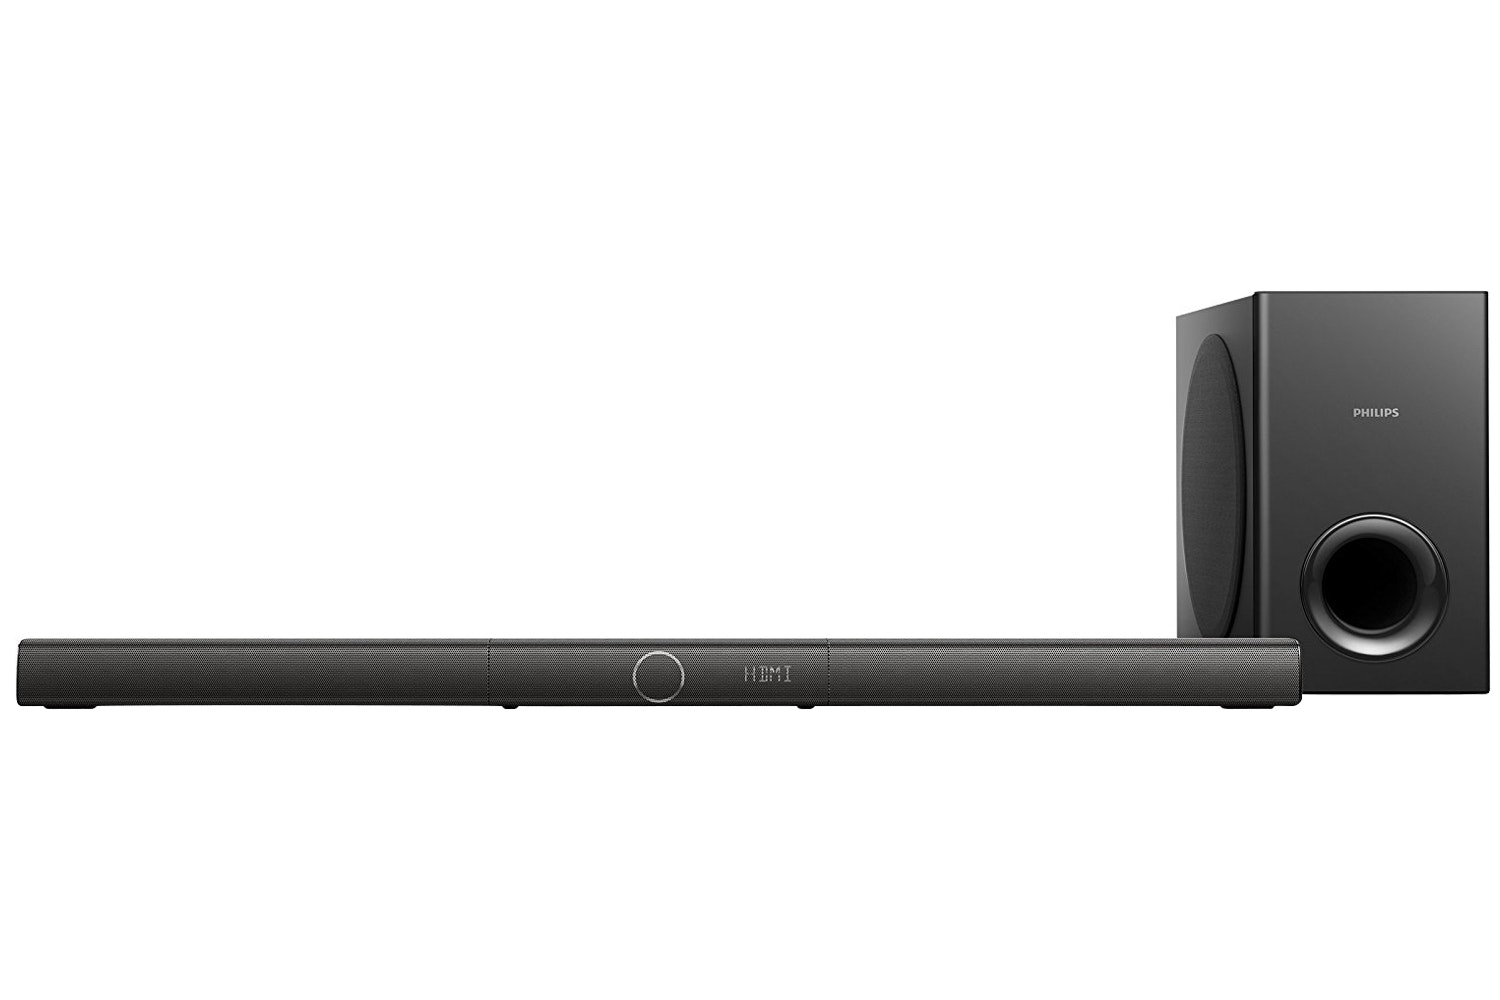 Philips Soundbar | HTL3160B/12